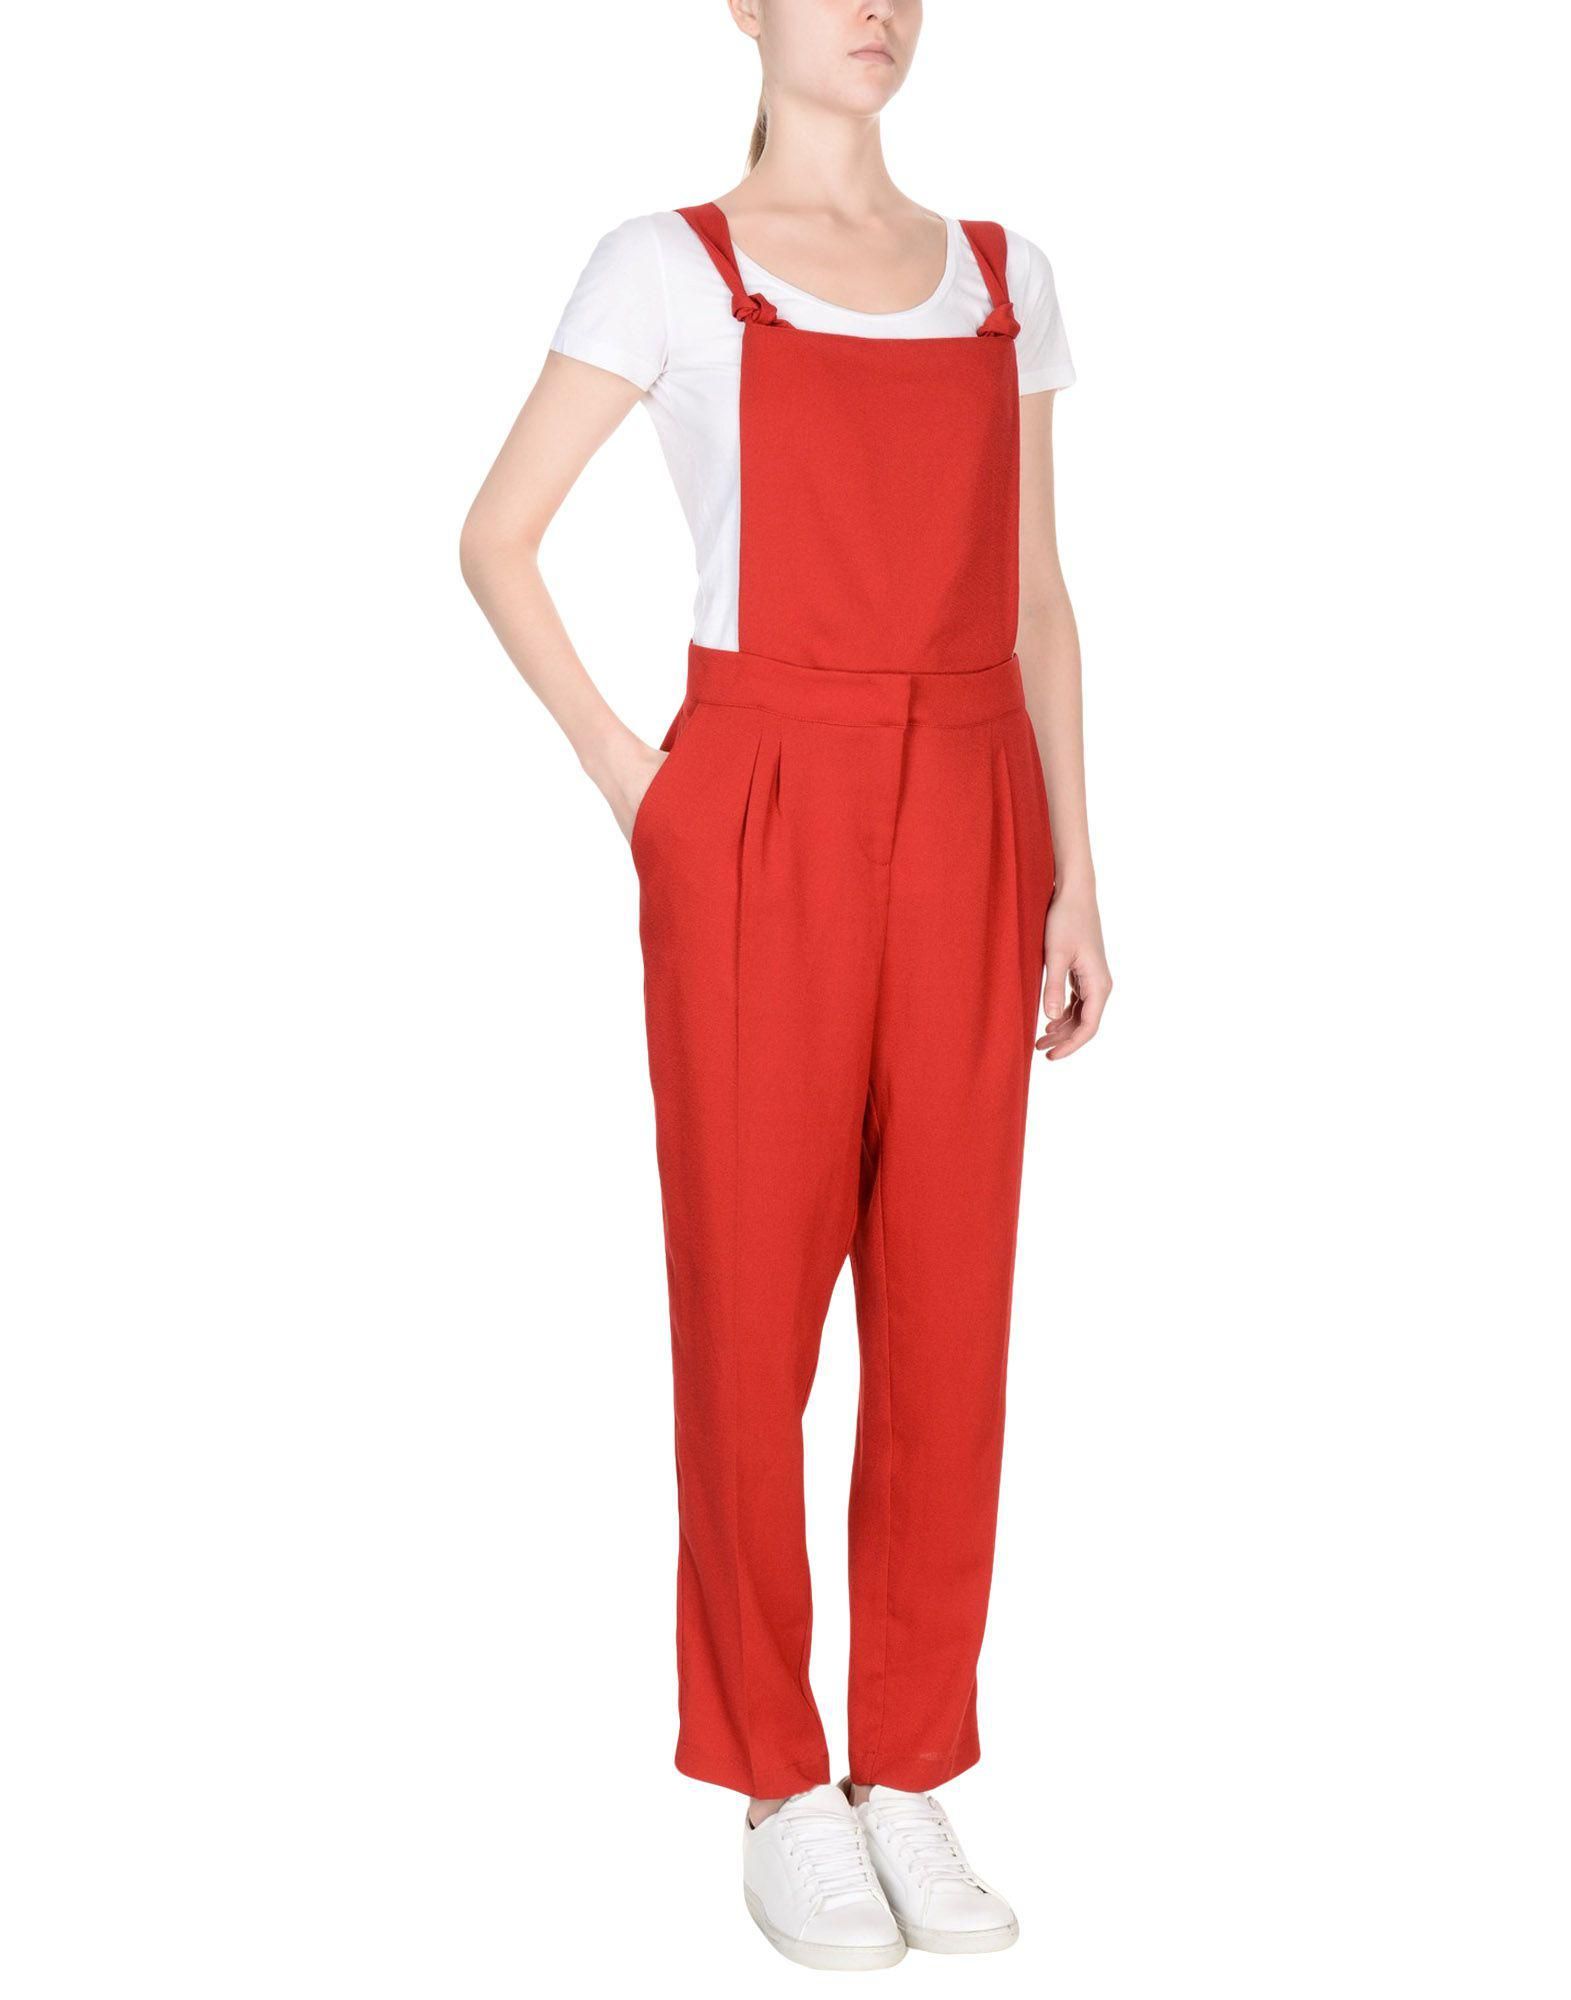 DUNGAREES - Dungarees SoAllure Outlet Best Wholesale 6RQCURt